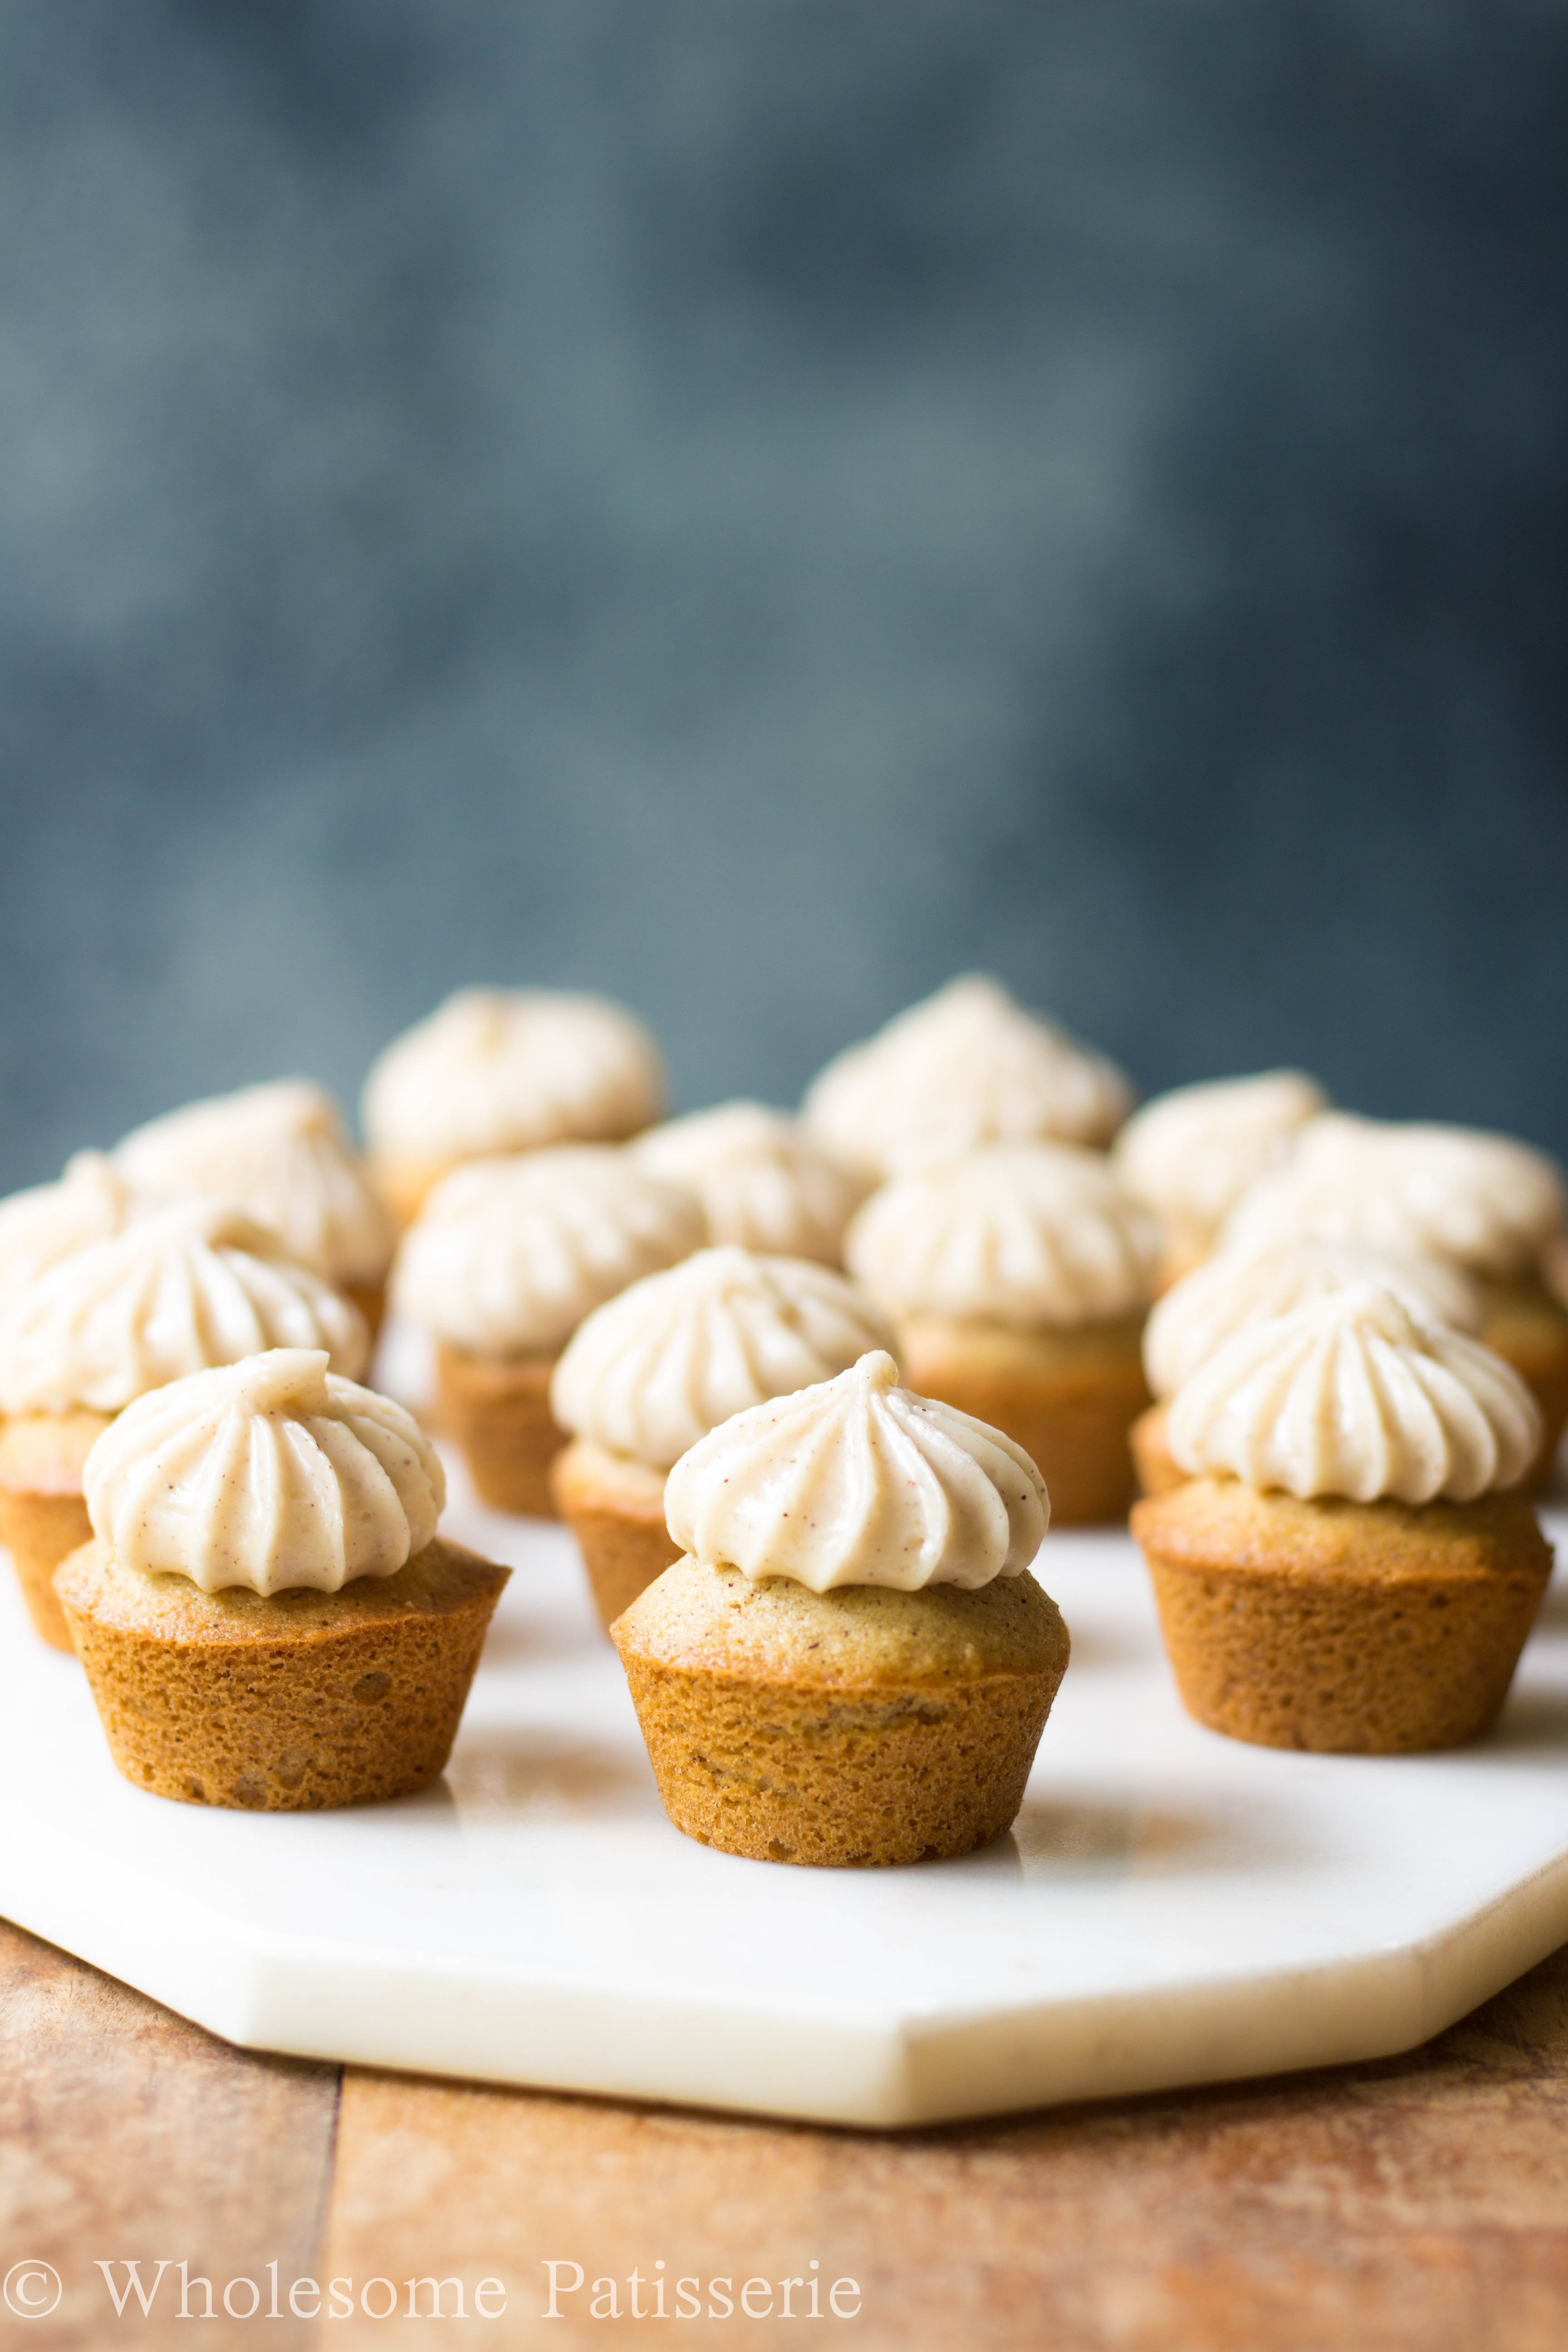 GLUTEN-FREE-cupcake-recipe-honey-cupcakes-vegetarian-DELICIOUS-easy-yummy-cupcakes-cinnamon-mini-cupcakes-wholesome-patisserie-baking